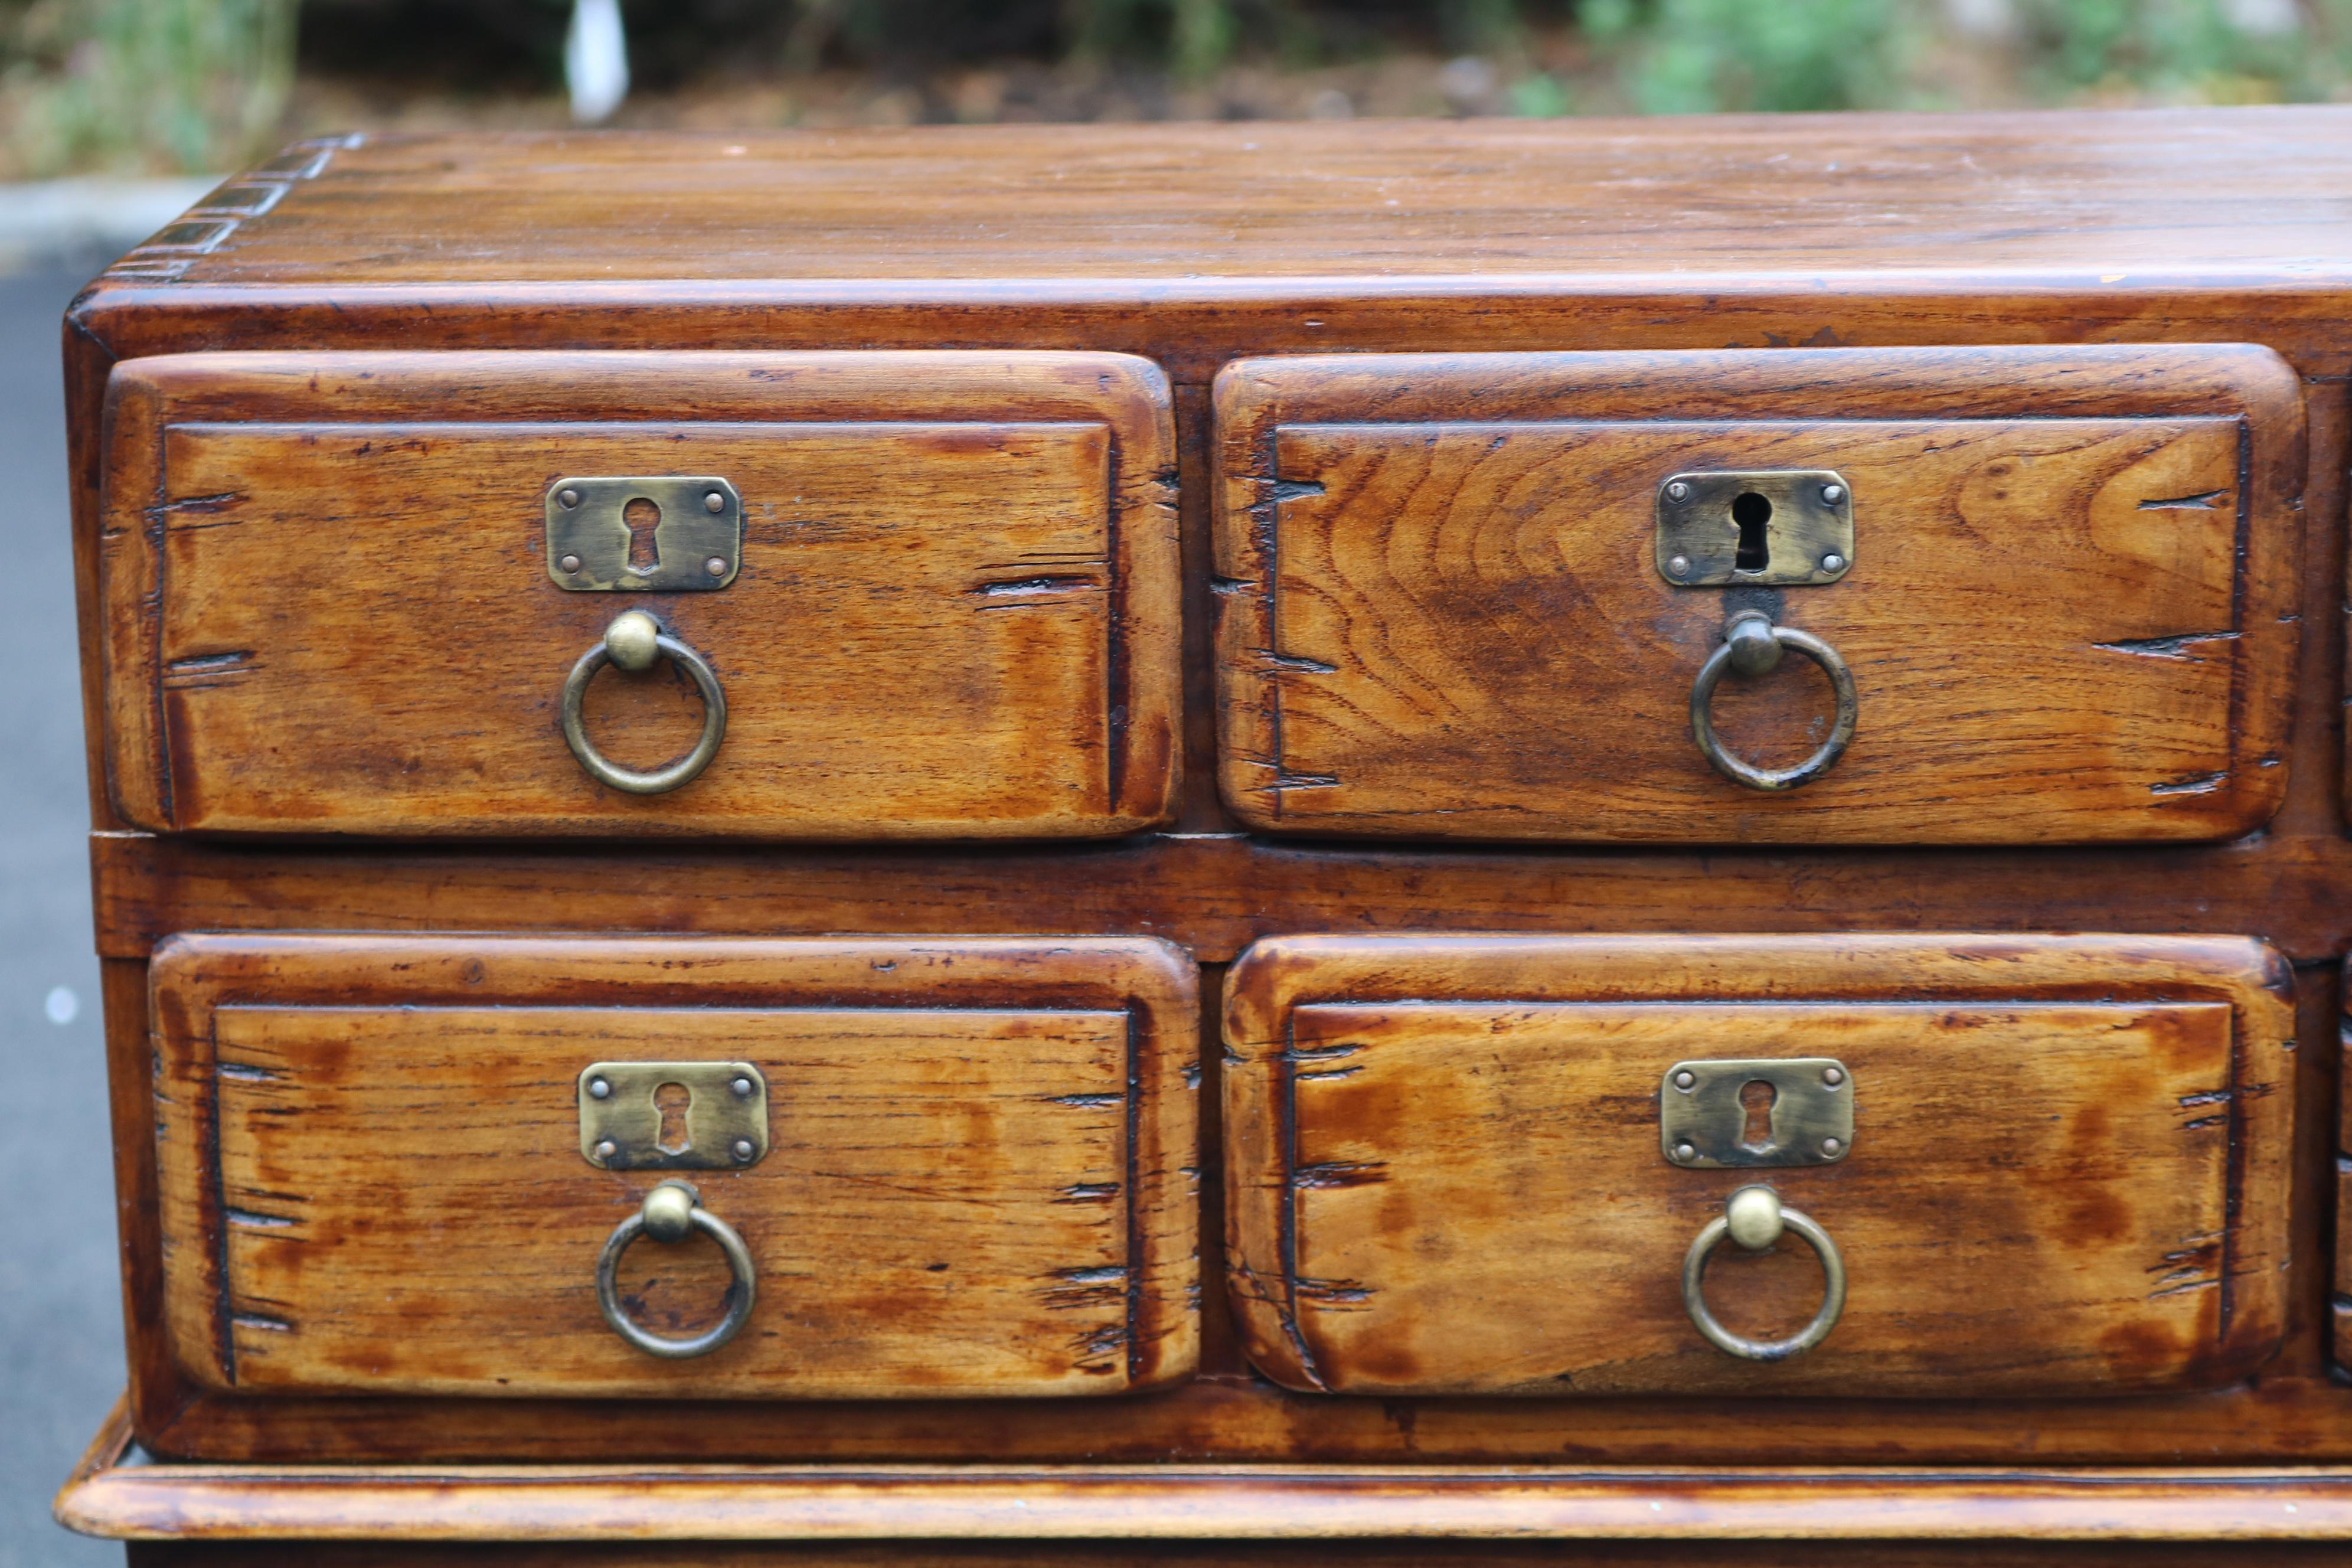 Charmant Vintage Wooden Tea Chest Spice Or Apothecary Storage Chest For Sale   Image  4 Of 11